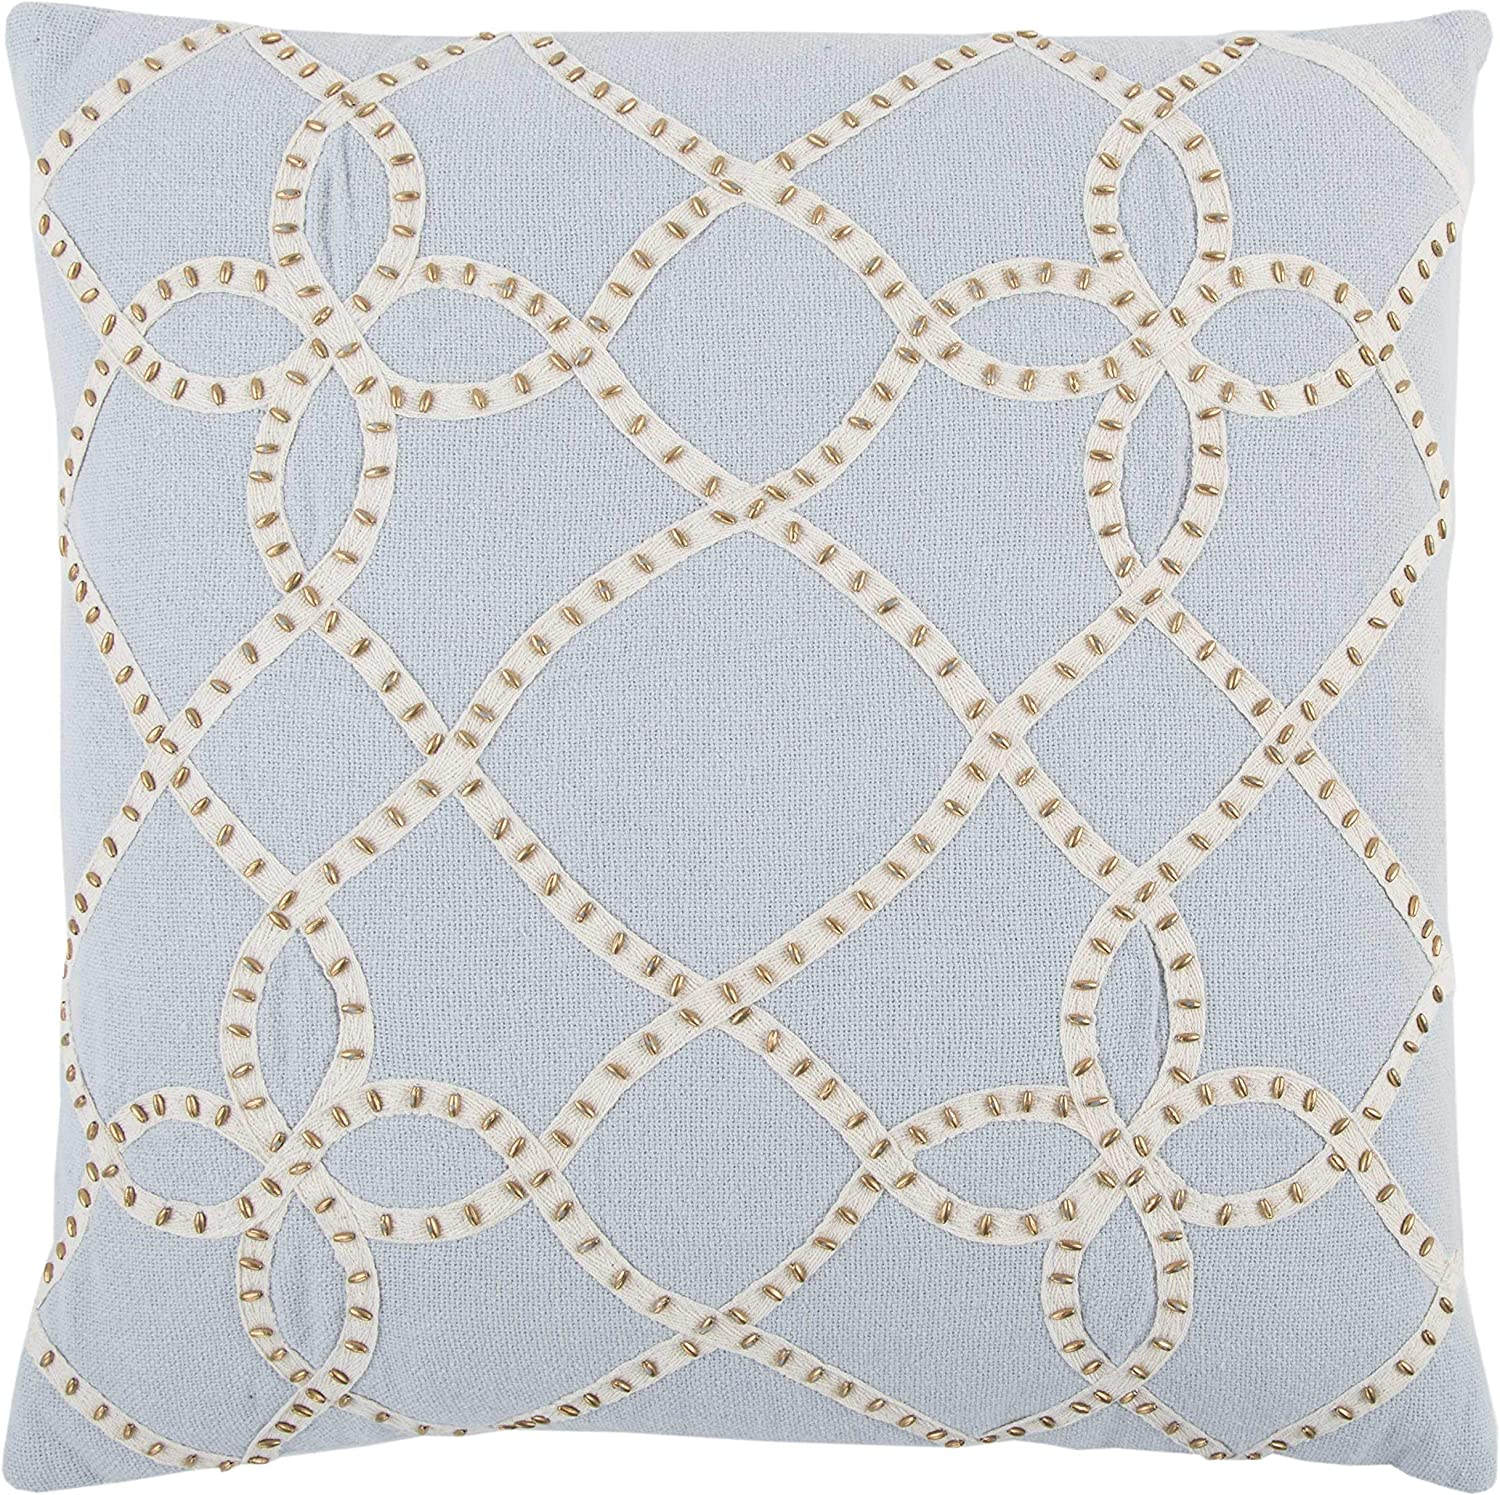 Rizzy Home Trellis Decorative Polyester Filled Pillow, 20